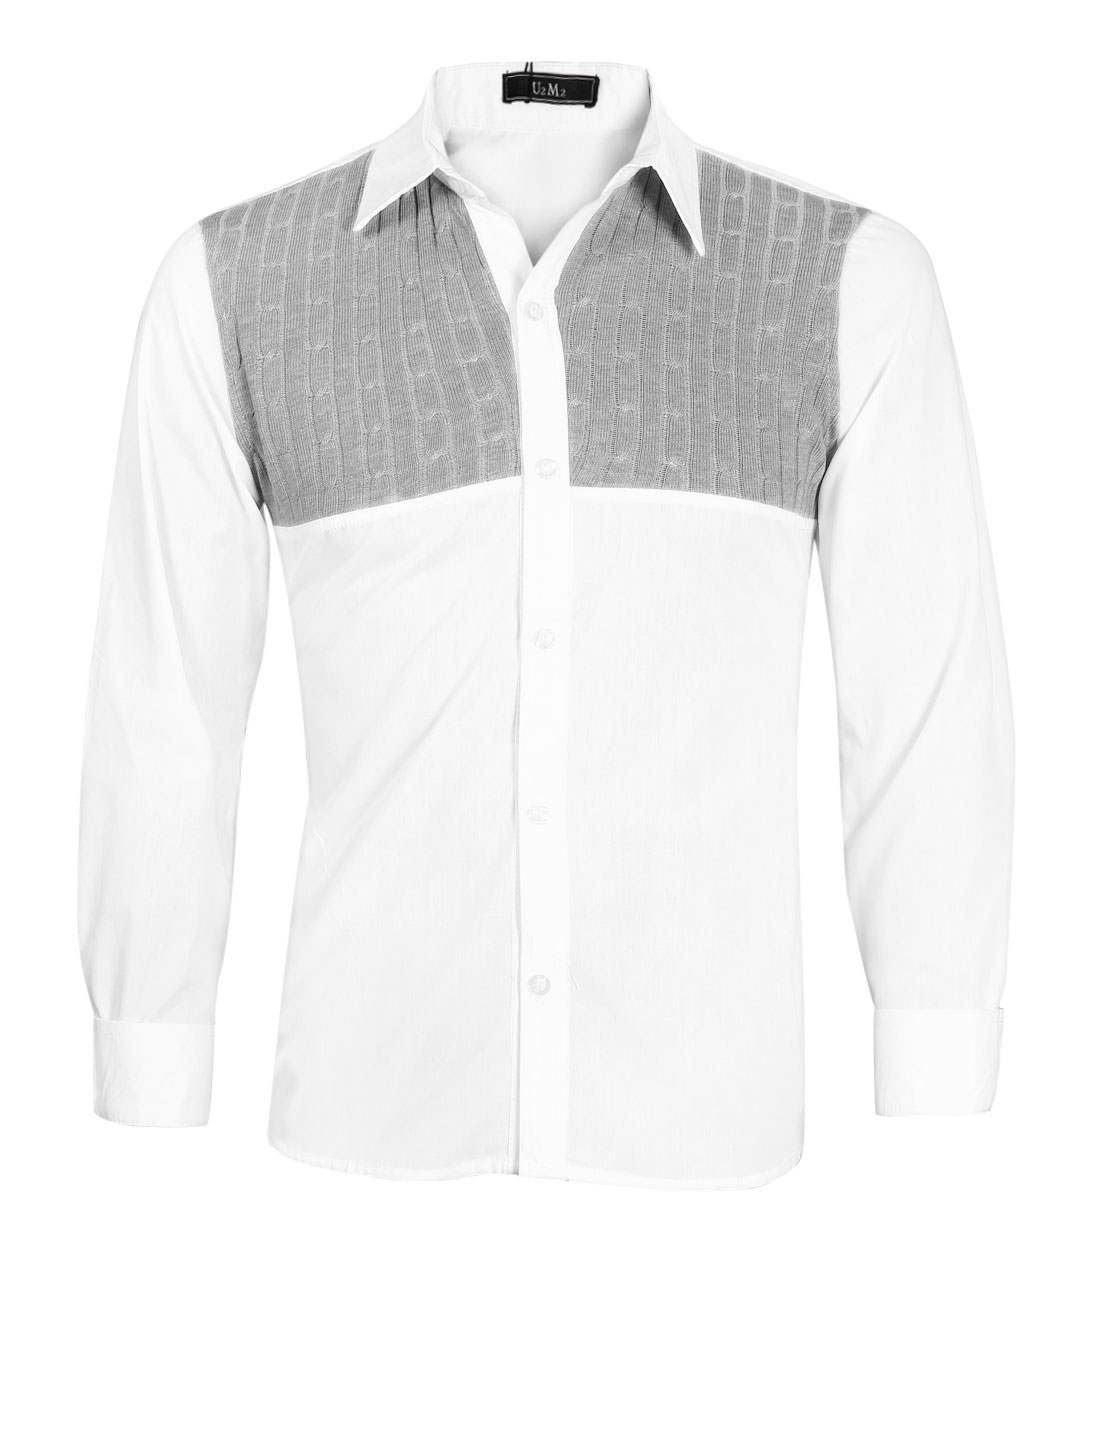 Men Button Cuffs Knitted Panel Colorblock Shirt White Light Gray M